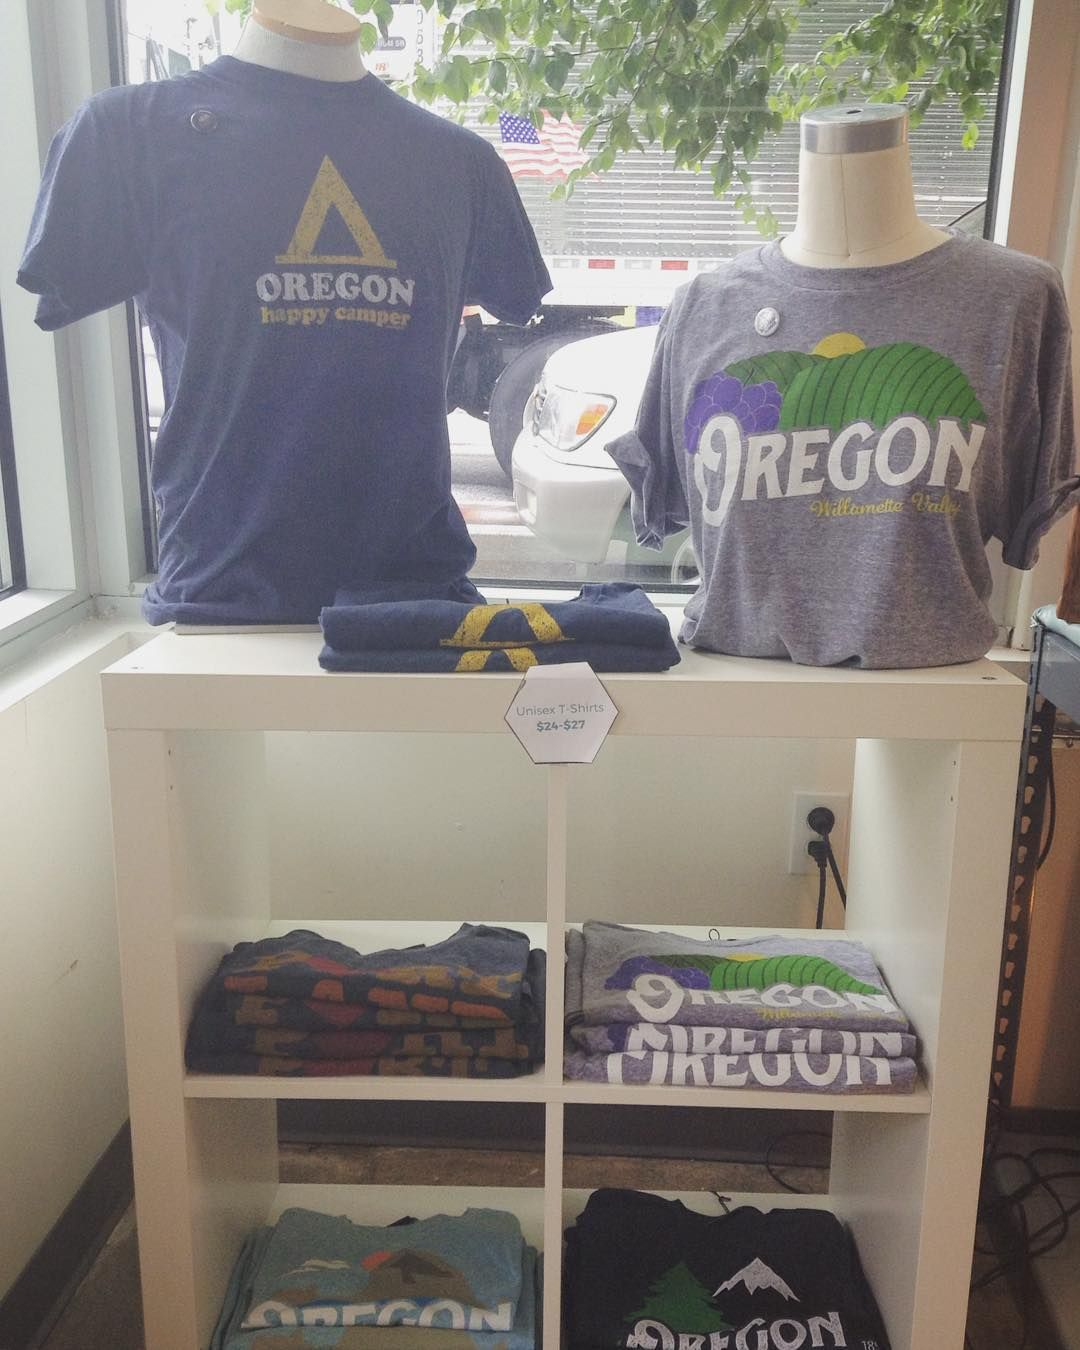 We have most sizes in the newest @littlebayroot #Oregon  #PDX T-Shirt designs  $24-$27 #intheshop